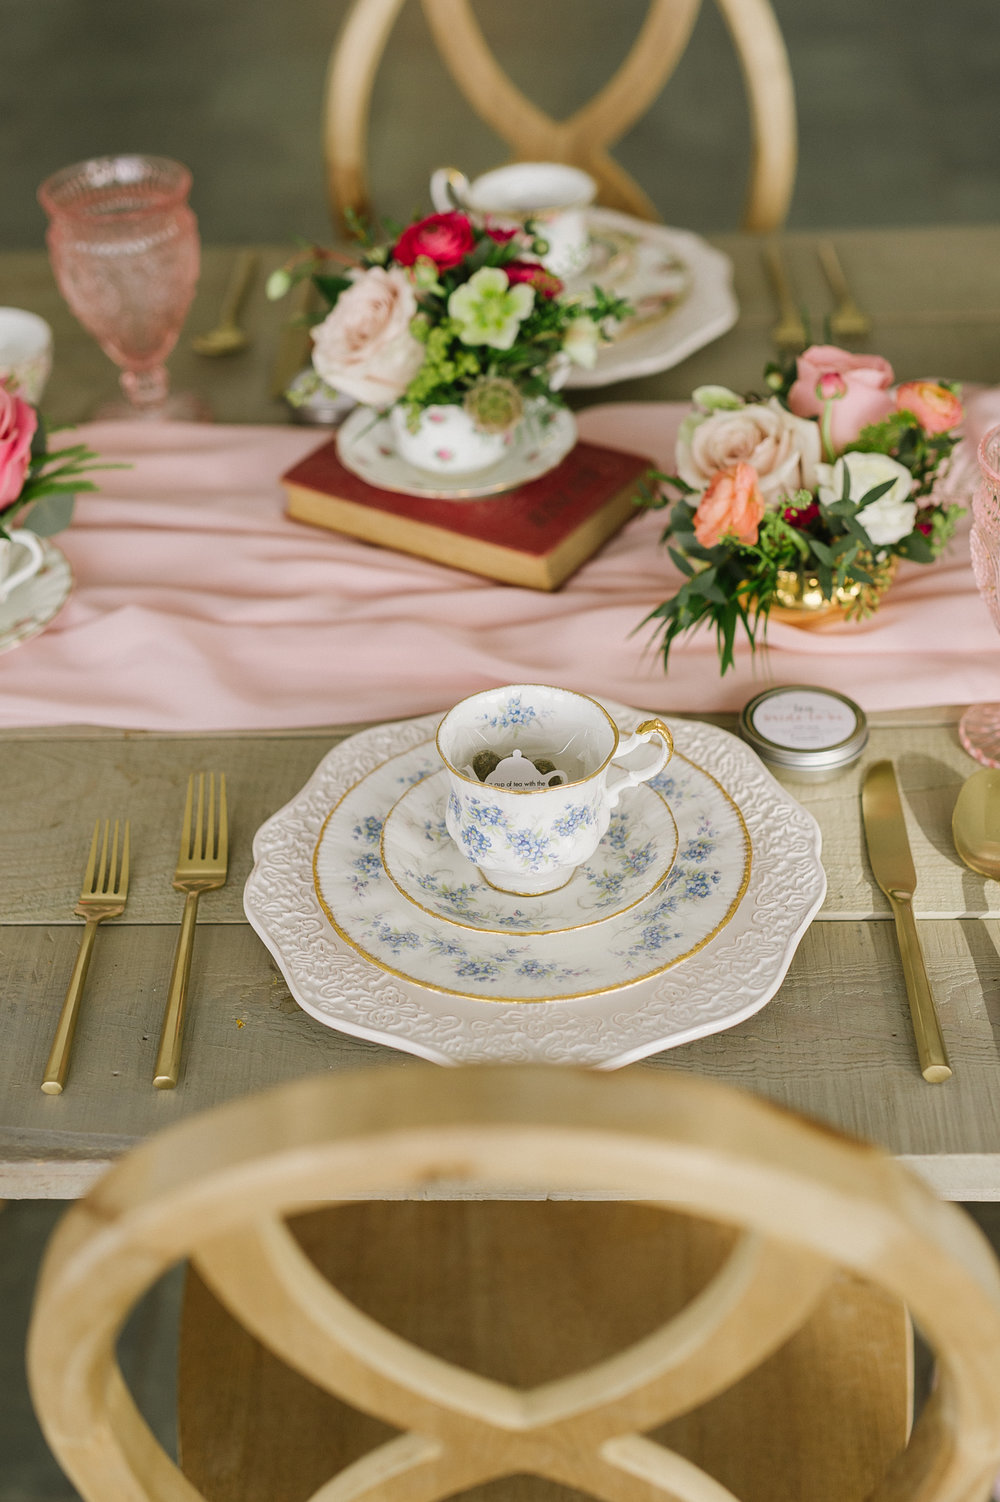 Calgary_Wedding_Photography_Spruce_Meadows_Bridal_Tea_2018_HR024.jpg